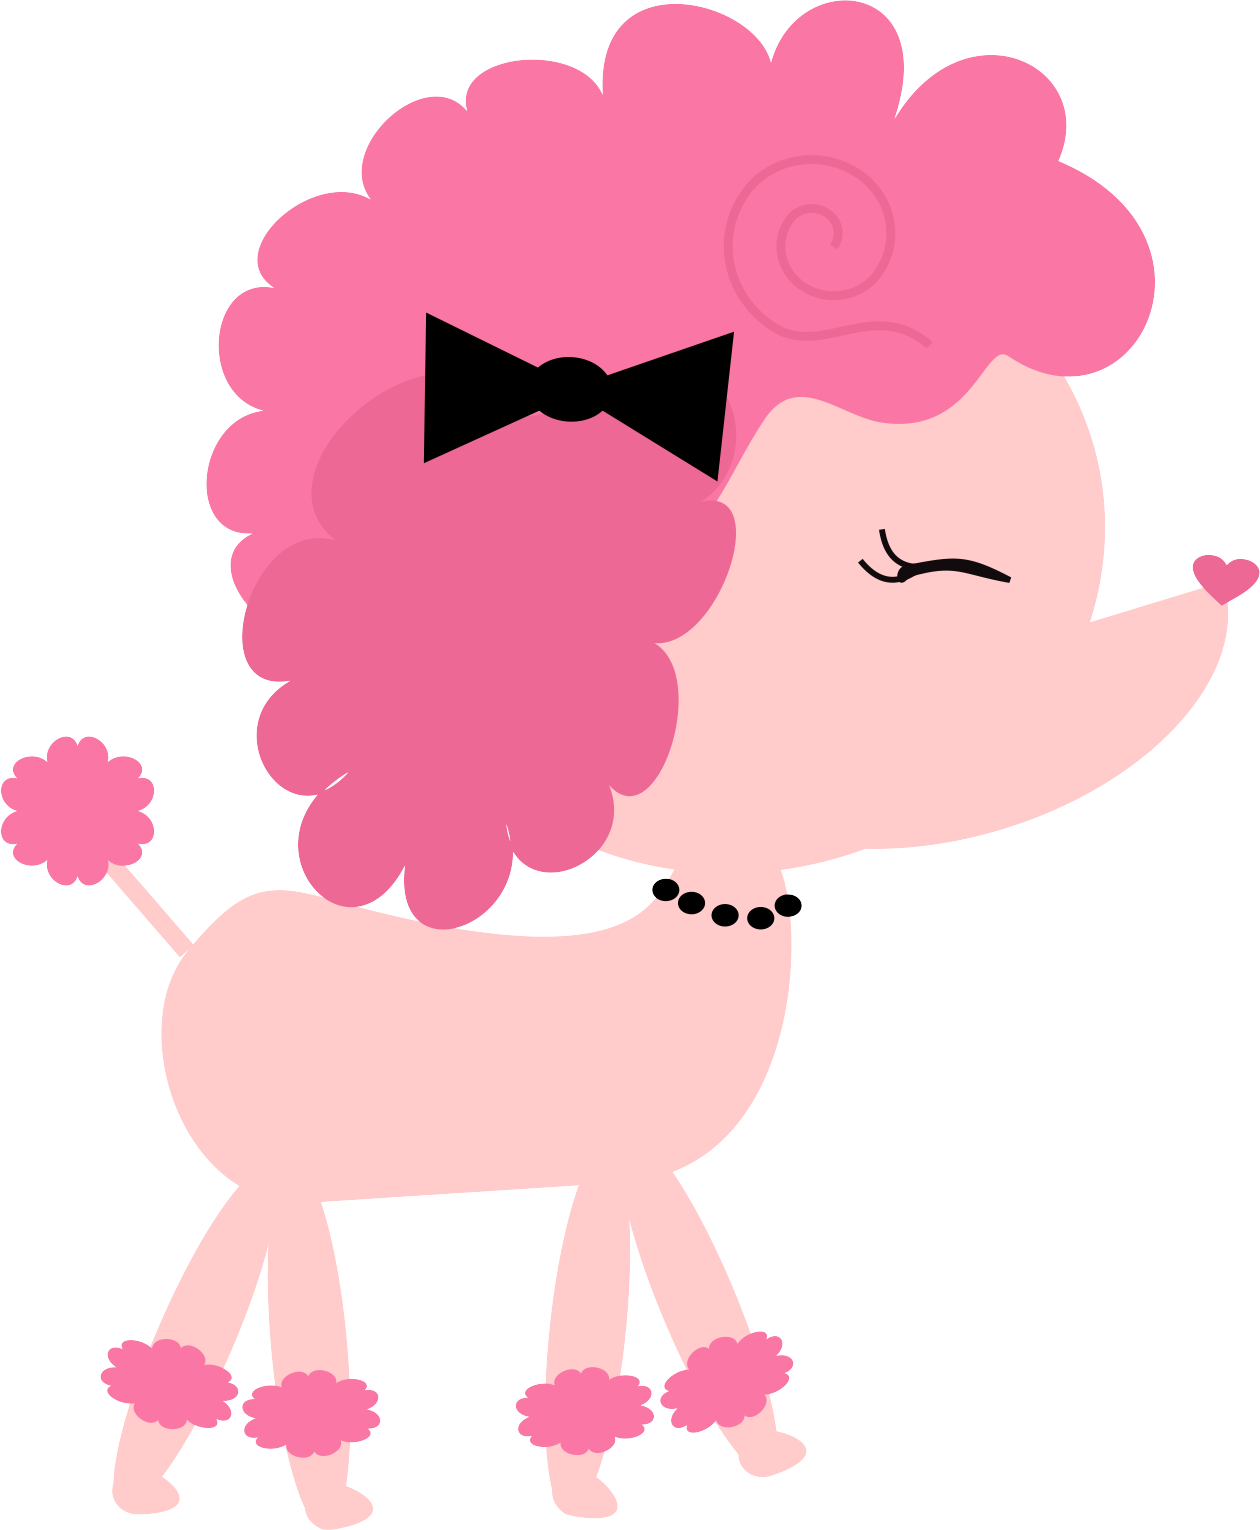 photo by flavoli minus shrink pinterest clip art scrap and rh pinterest com French Poodle Cartoon french poodle clipart free